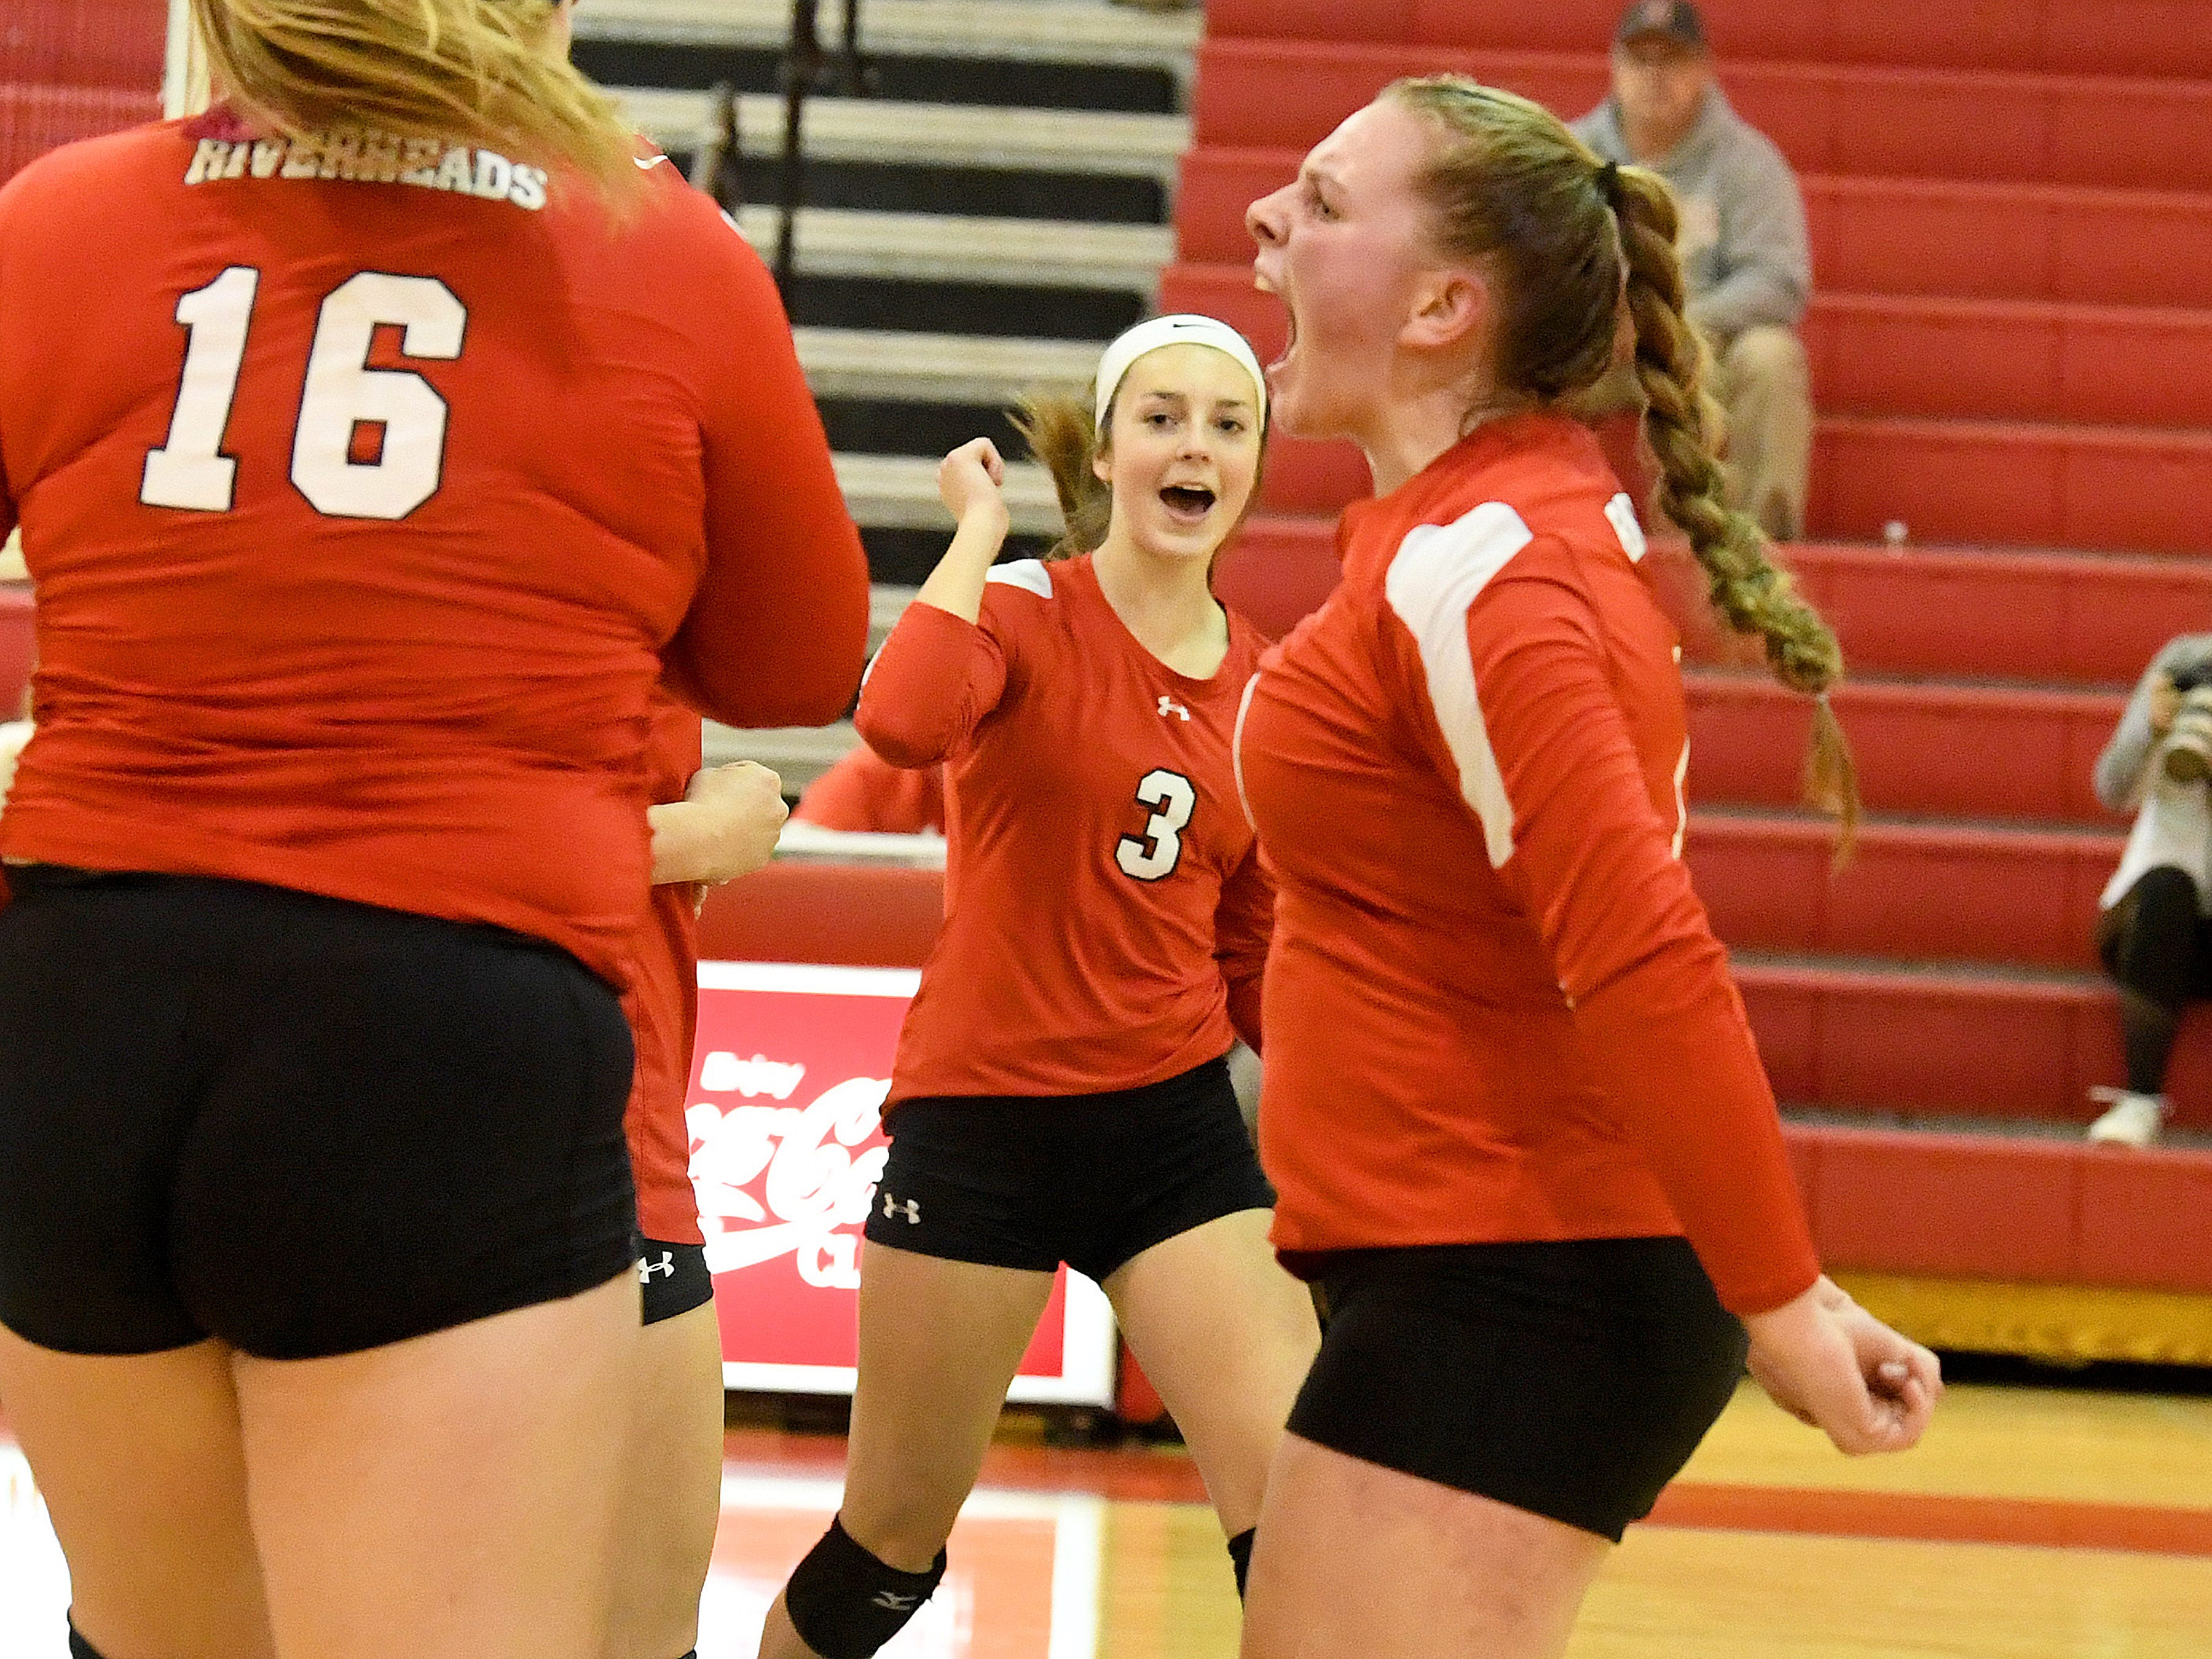 Riverheads' Kendyl Argenbright celebrates a point scored on court with her teammates during the Region 1B volleyball championship played in Greenville on Wednesday, Nov. 7, 2018.